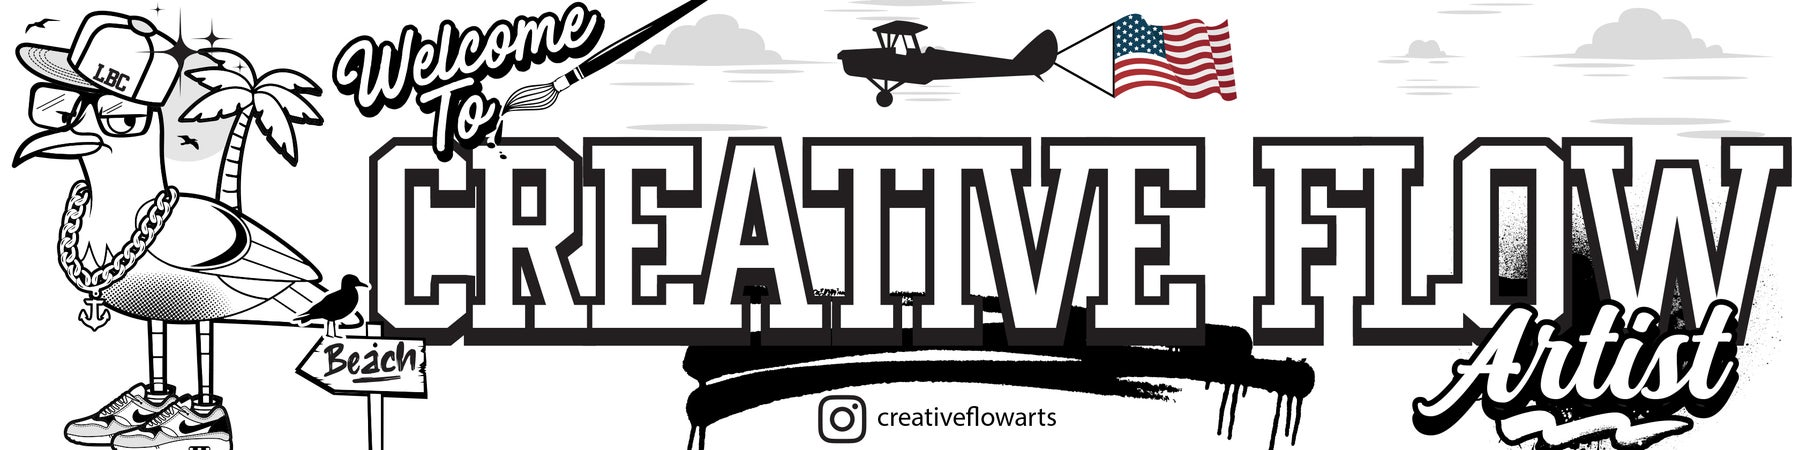 Creativeflowart Home